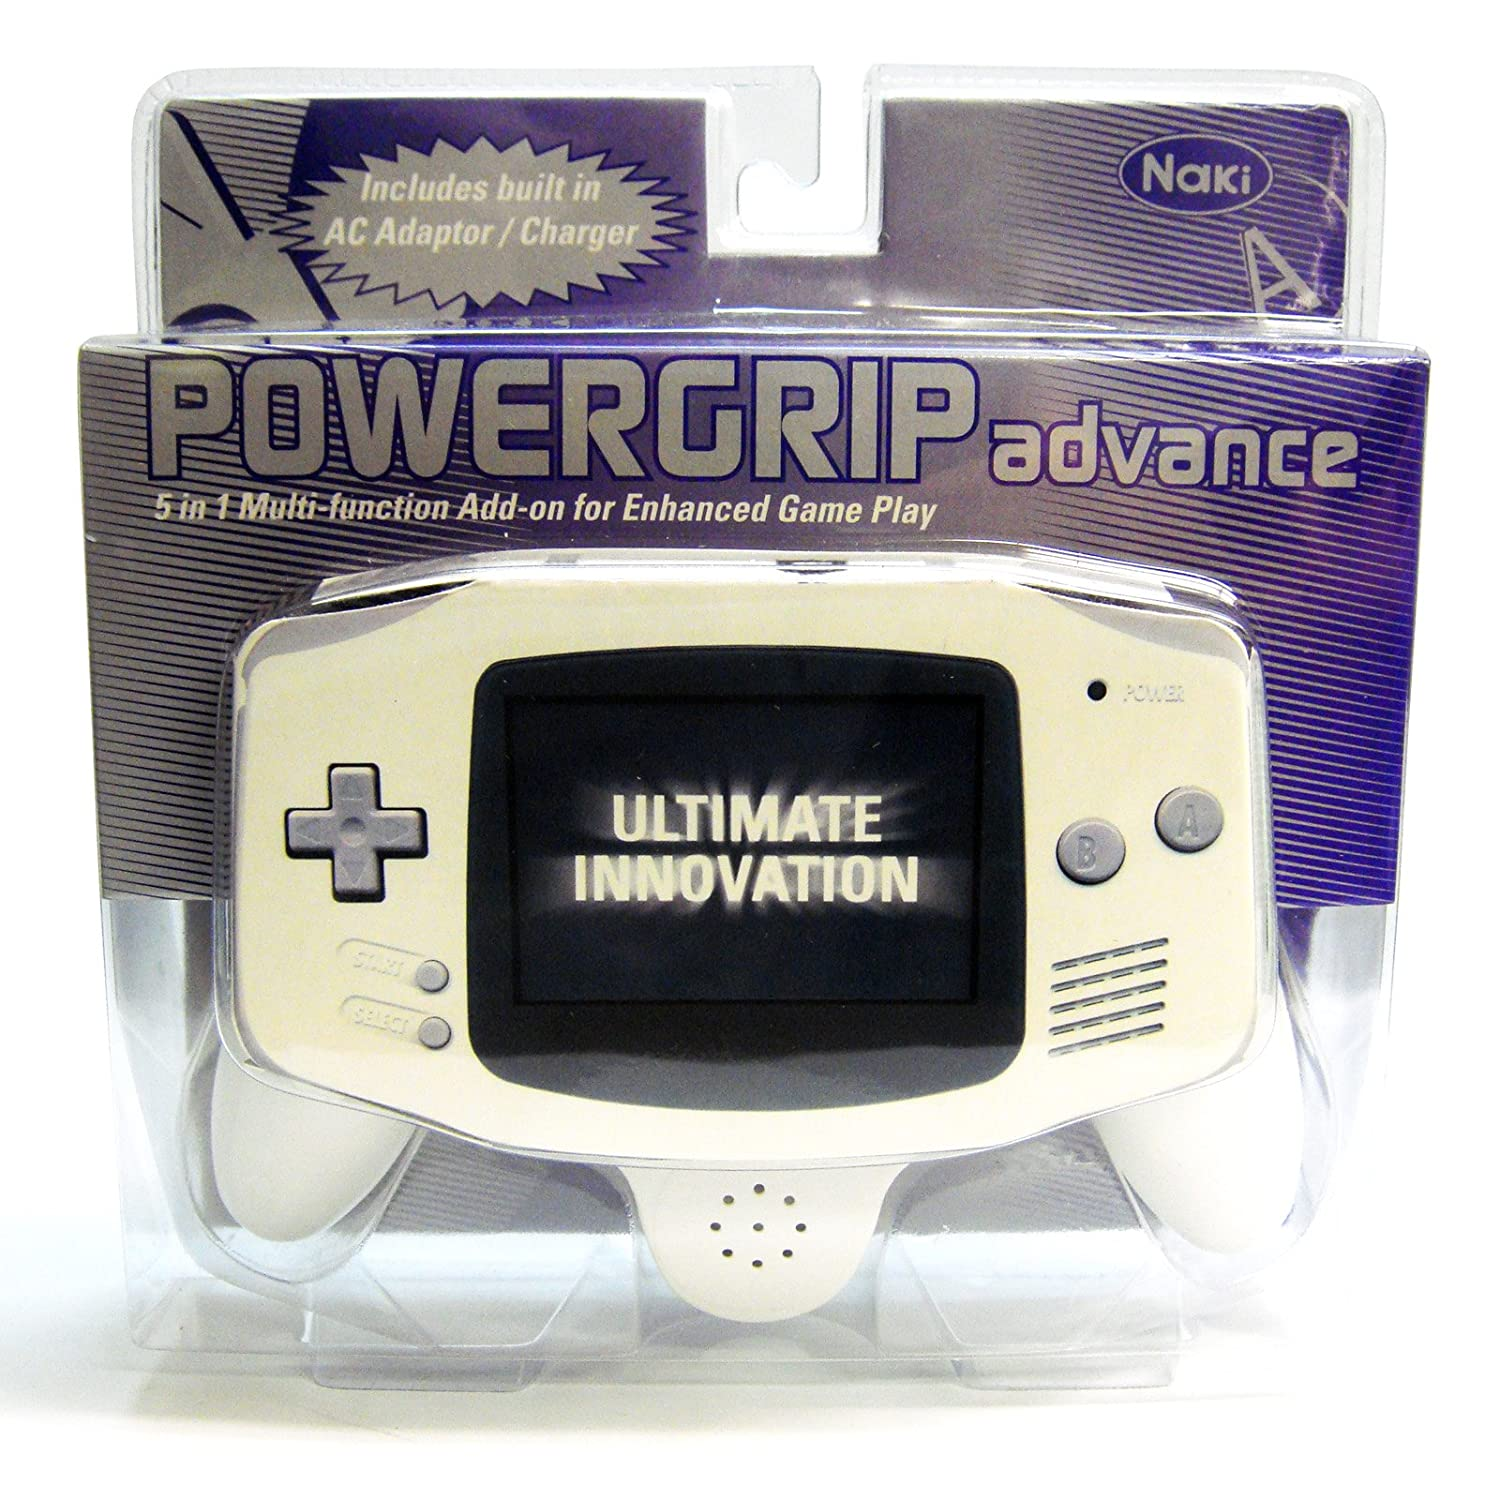 Powergrip Advance 5-in-1 Add-on for Game Boy Advance: Video Games